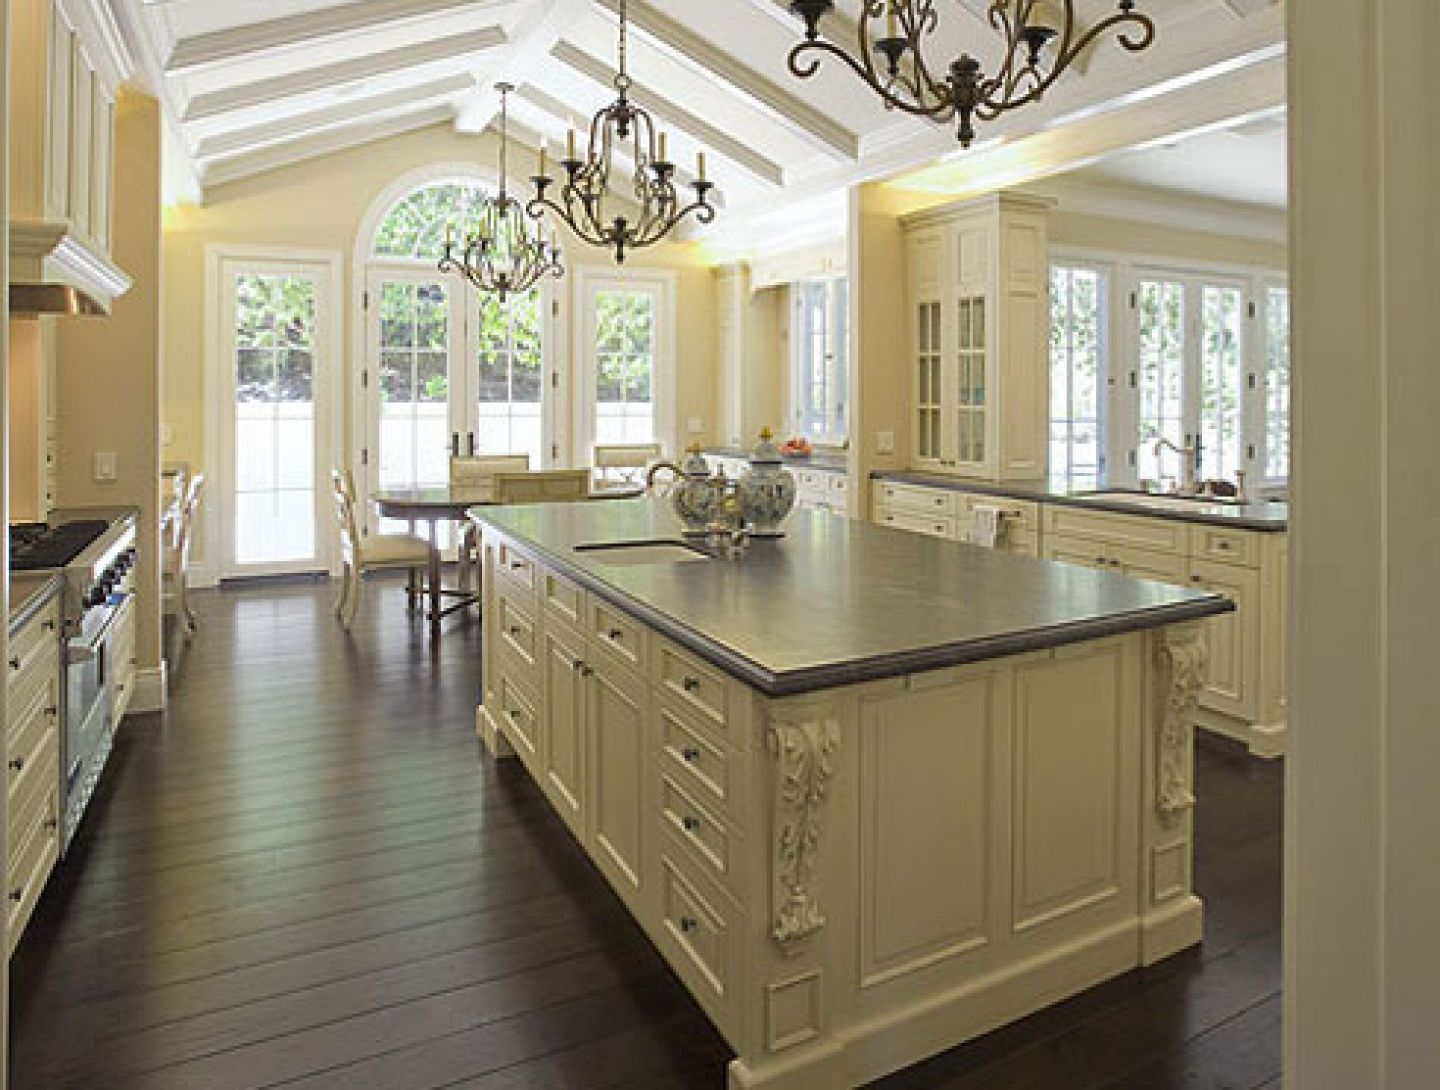 Pictures of french country kitchen design french country for French country kitchen designs